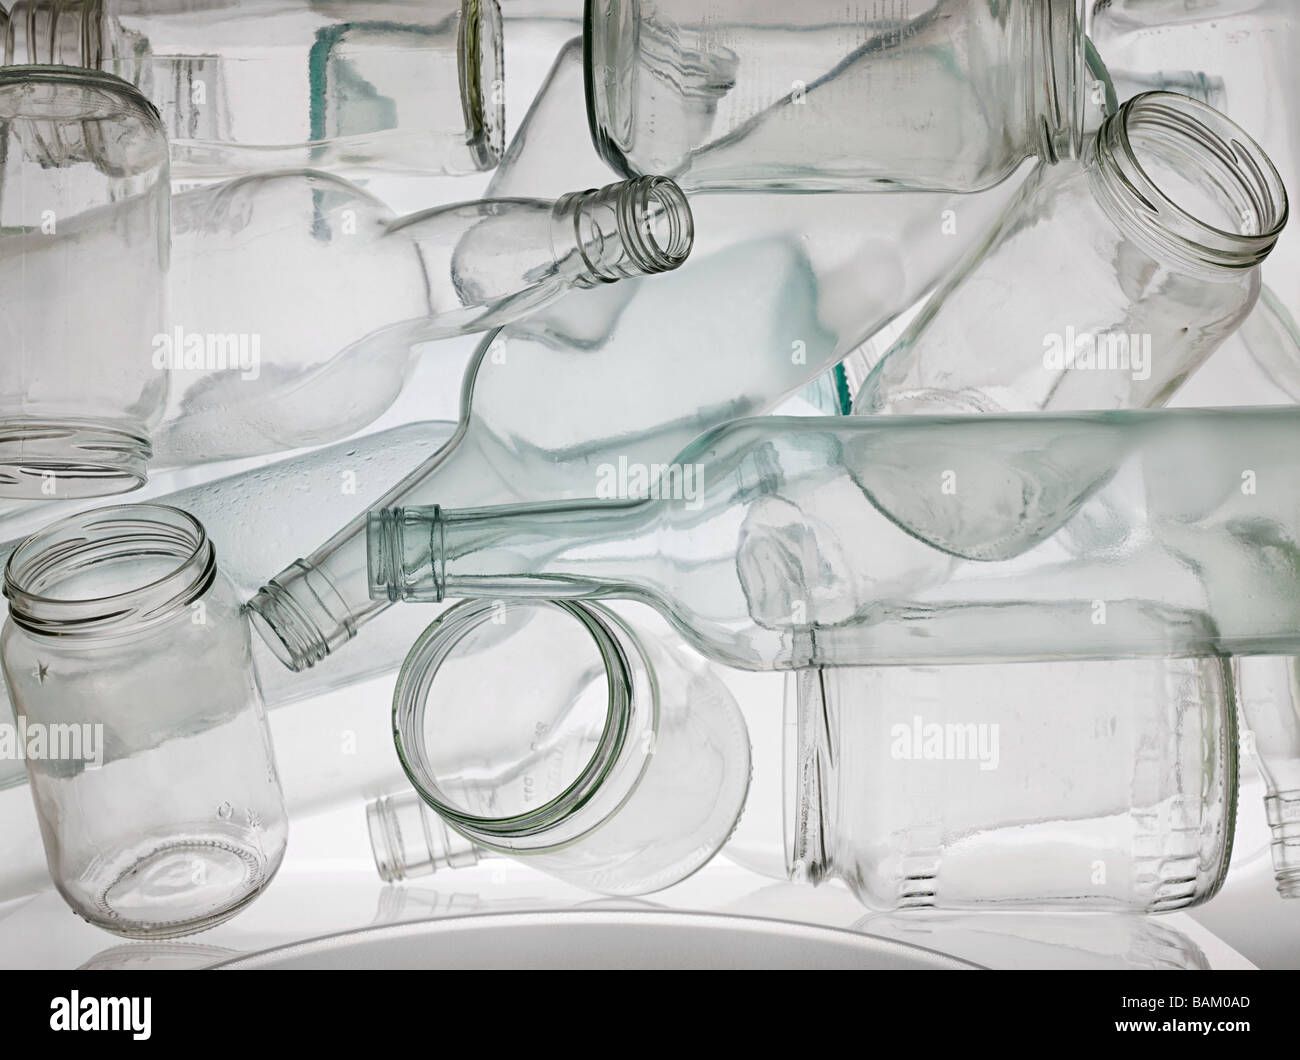 Empty jars and bottles - Stock Image